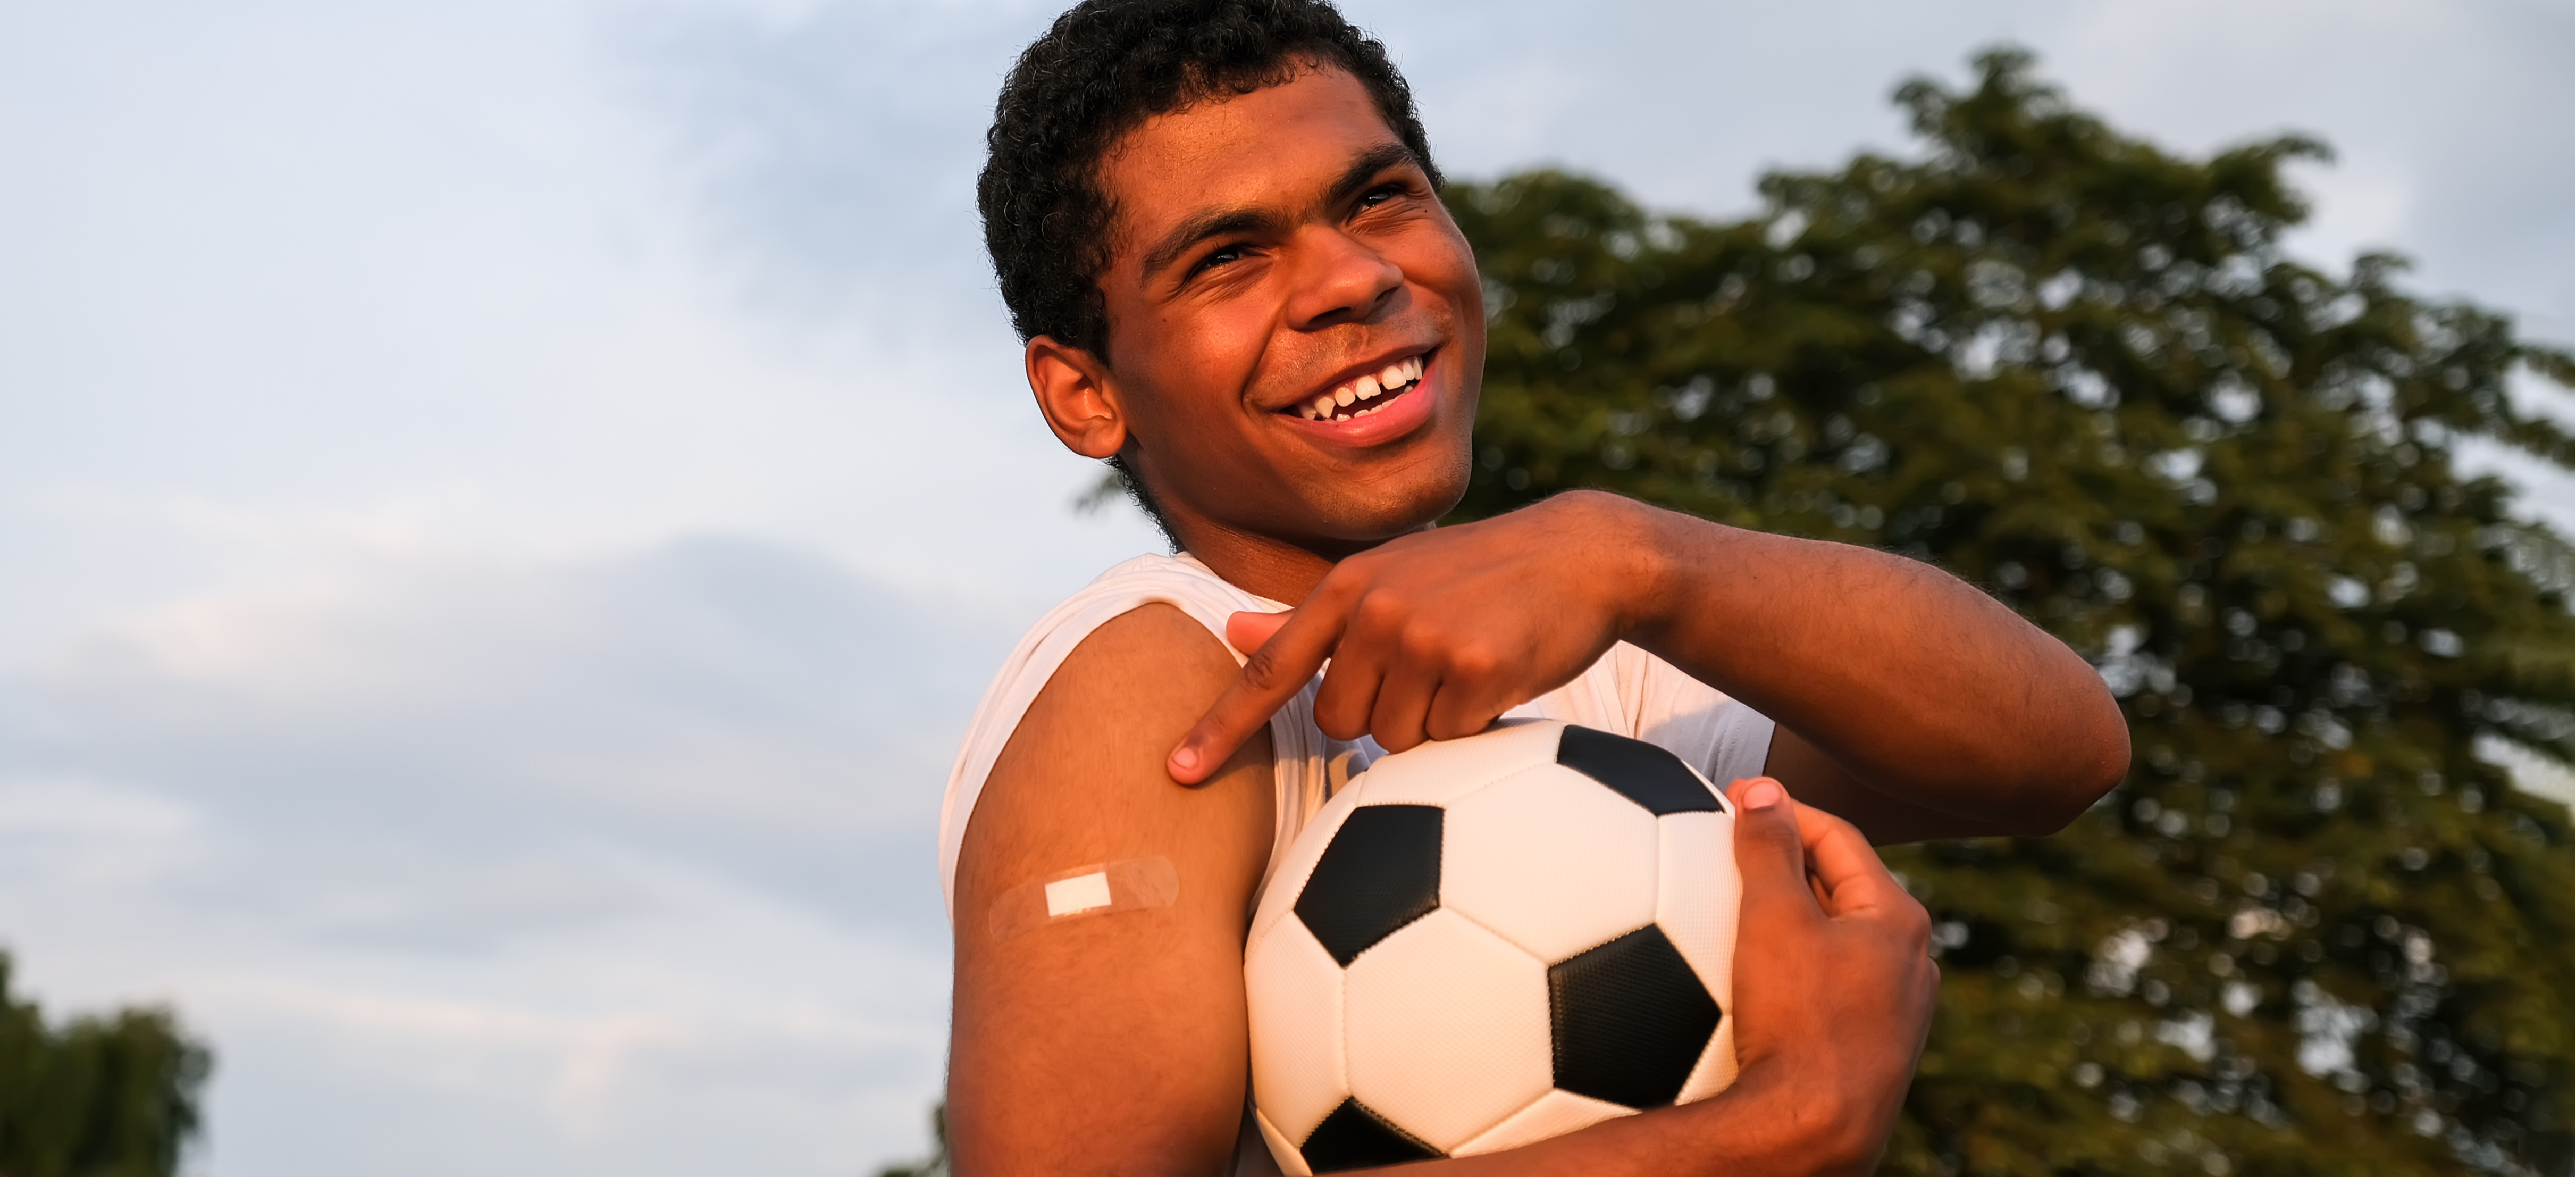 Vaccinated teenage boy smiling holding soccer ball